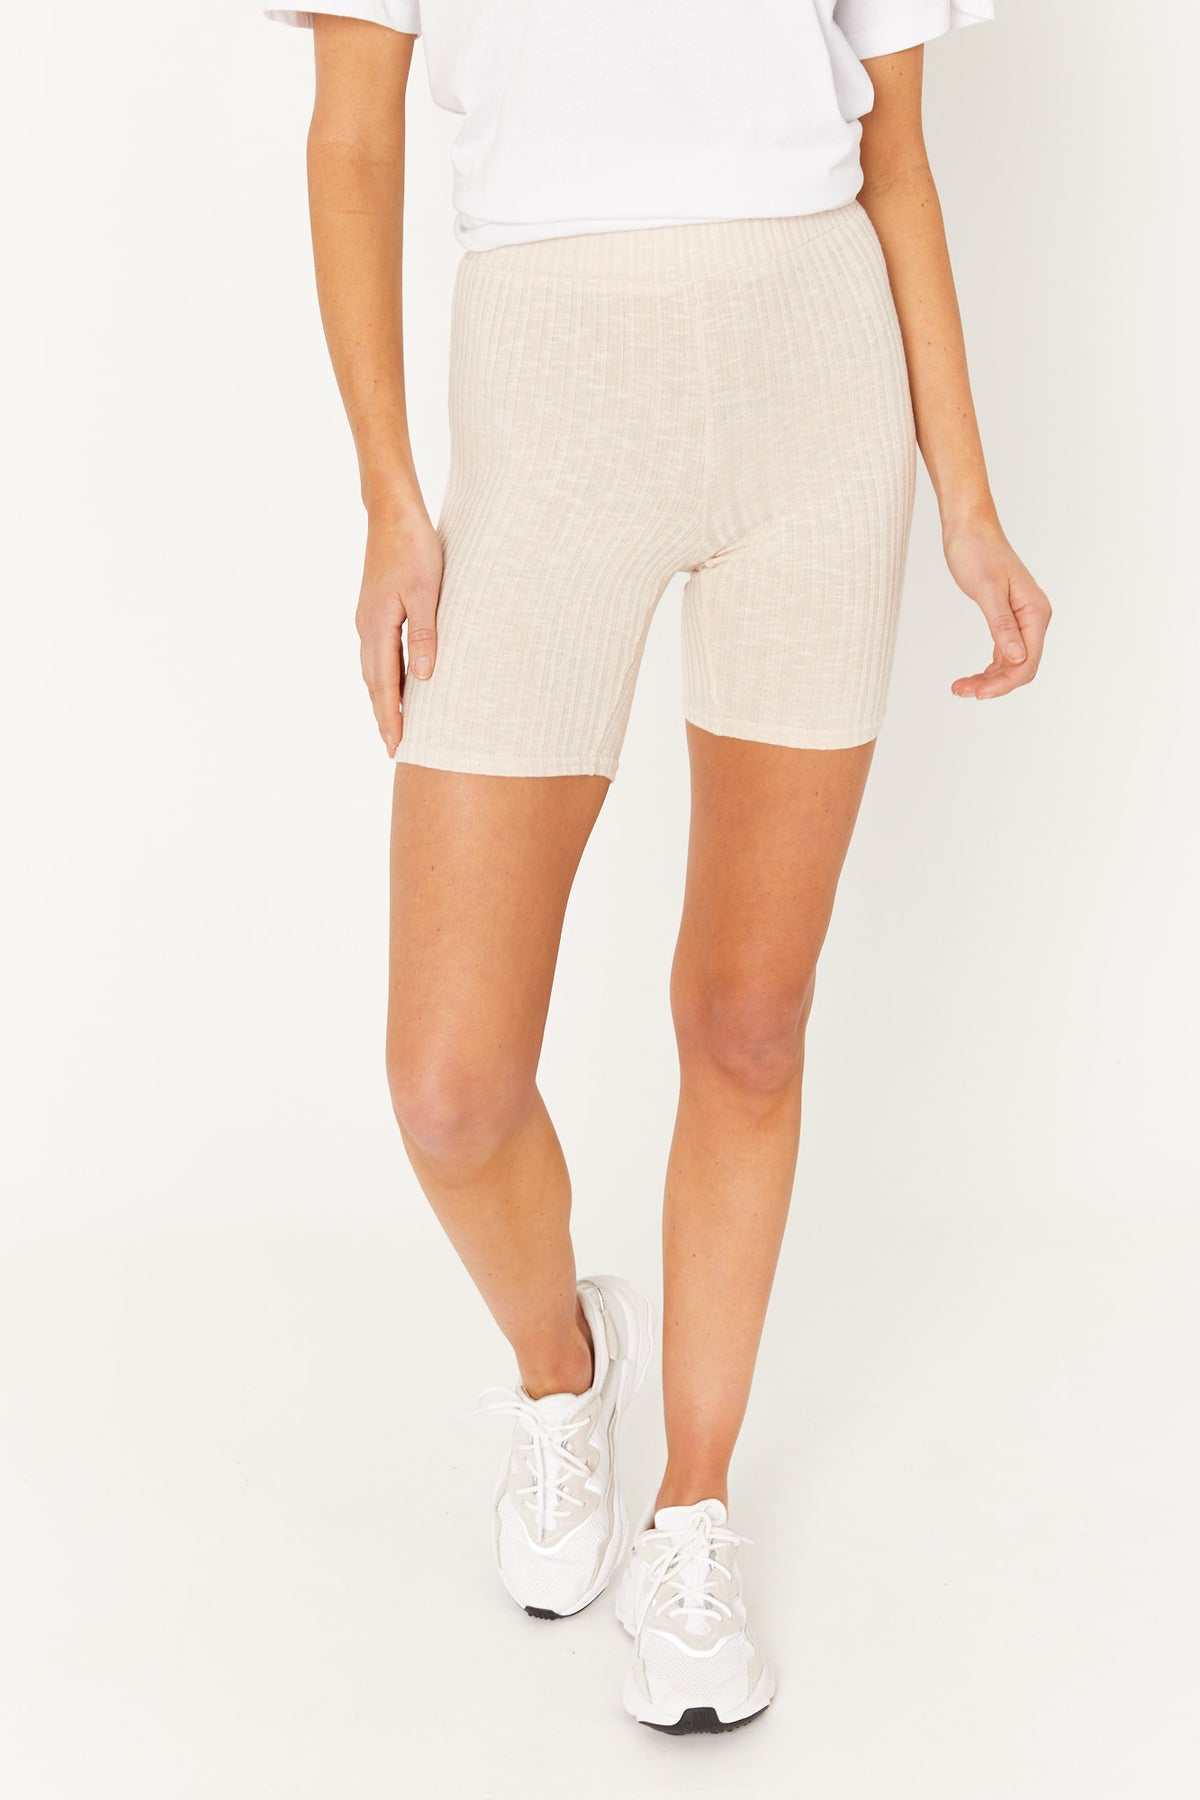 Kaia Ribbed Short Nude